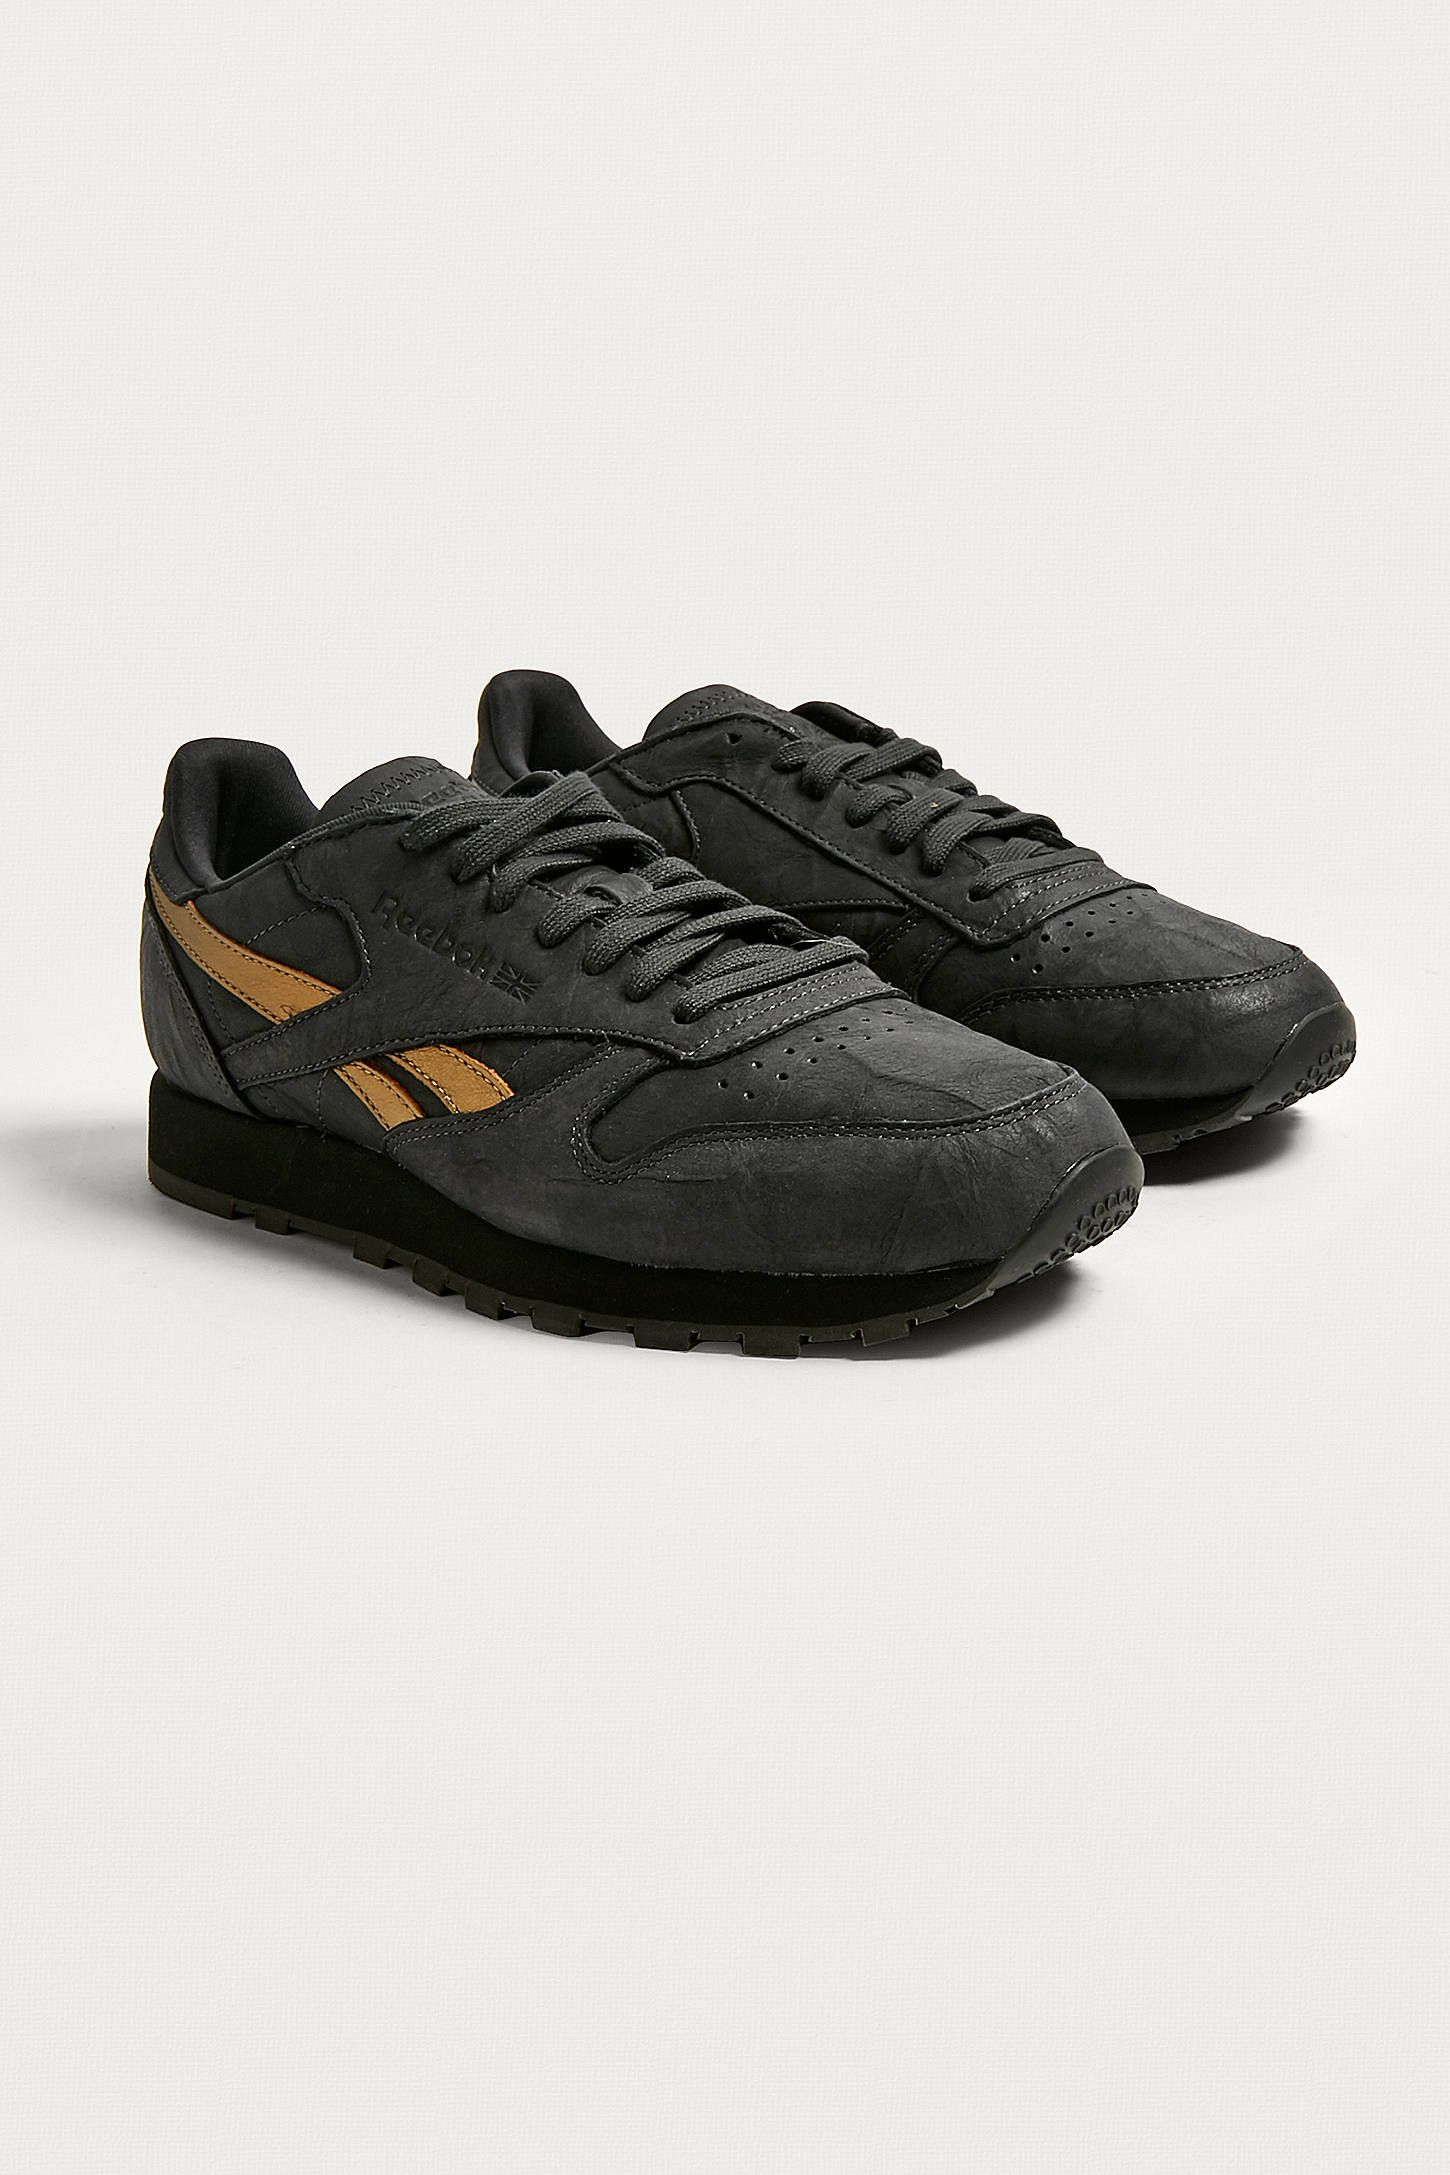 8ab87c37ea4c Shop Reebok Classic Leather TU Black Trainers at Urban Outfitters today. We  carry all the latest styles